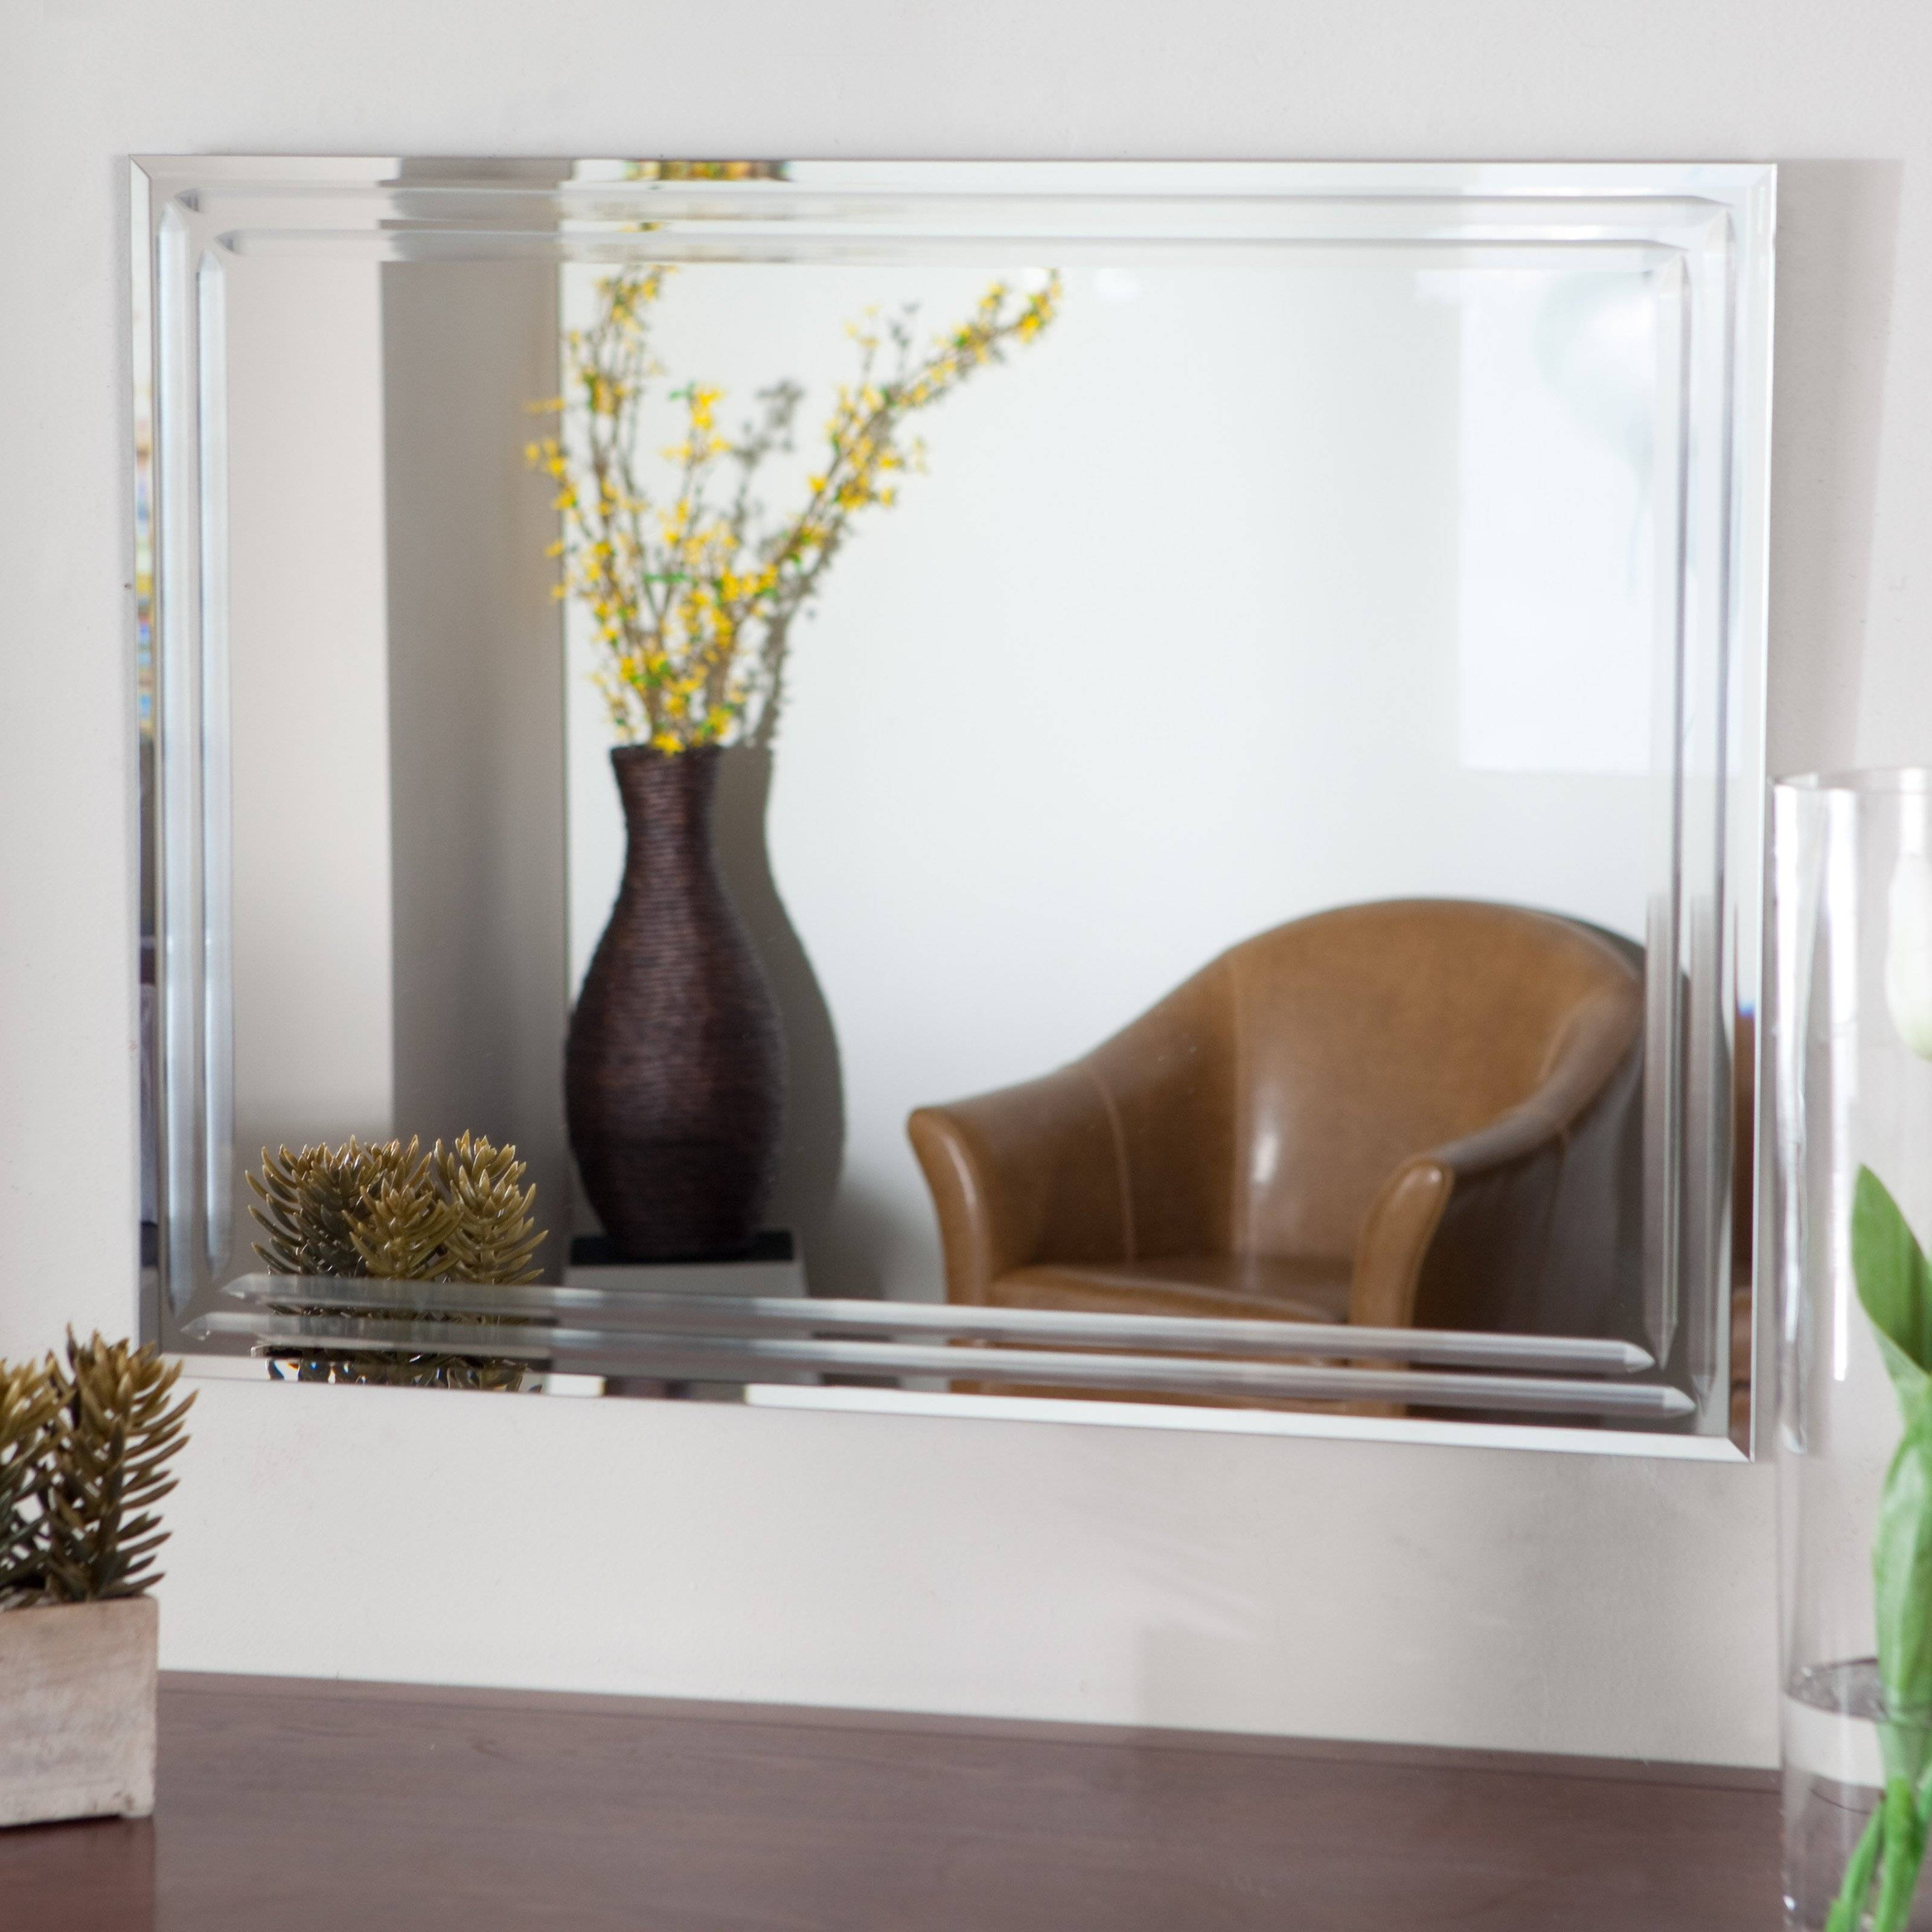 Tekema Rectangle Frameless Wall Mirror - 42W X 30H In. | Hayneedle throughout Frameless Wall Mirrors (Image 14 of 15)